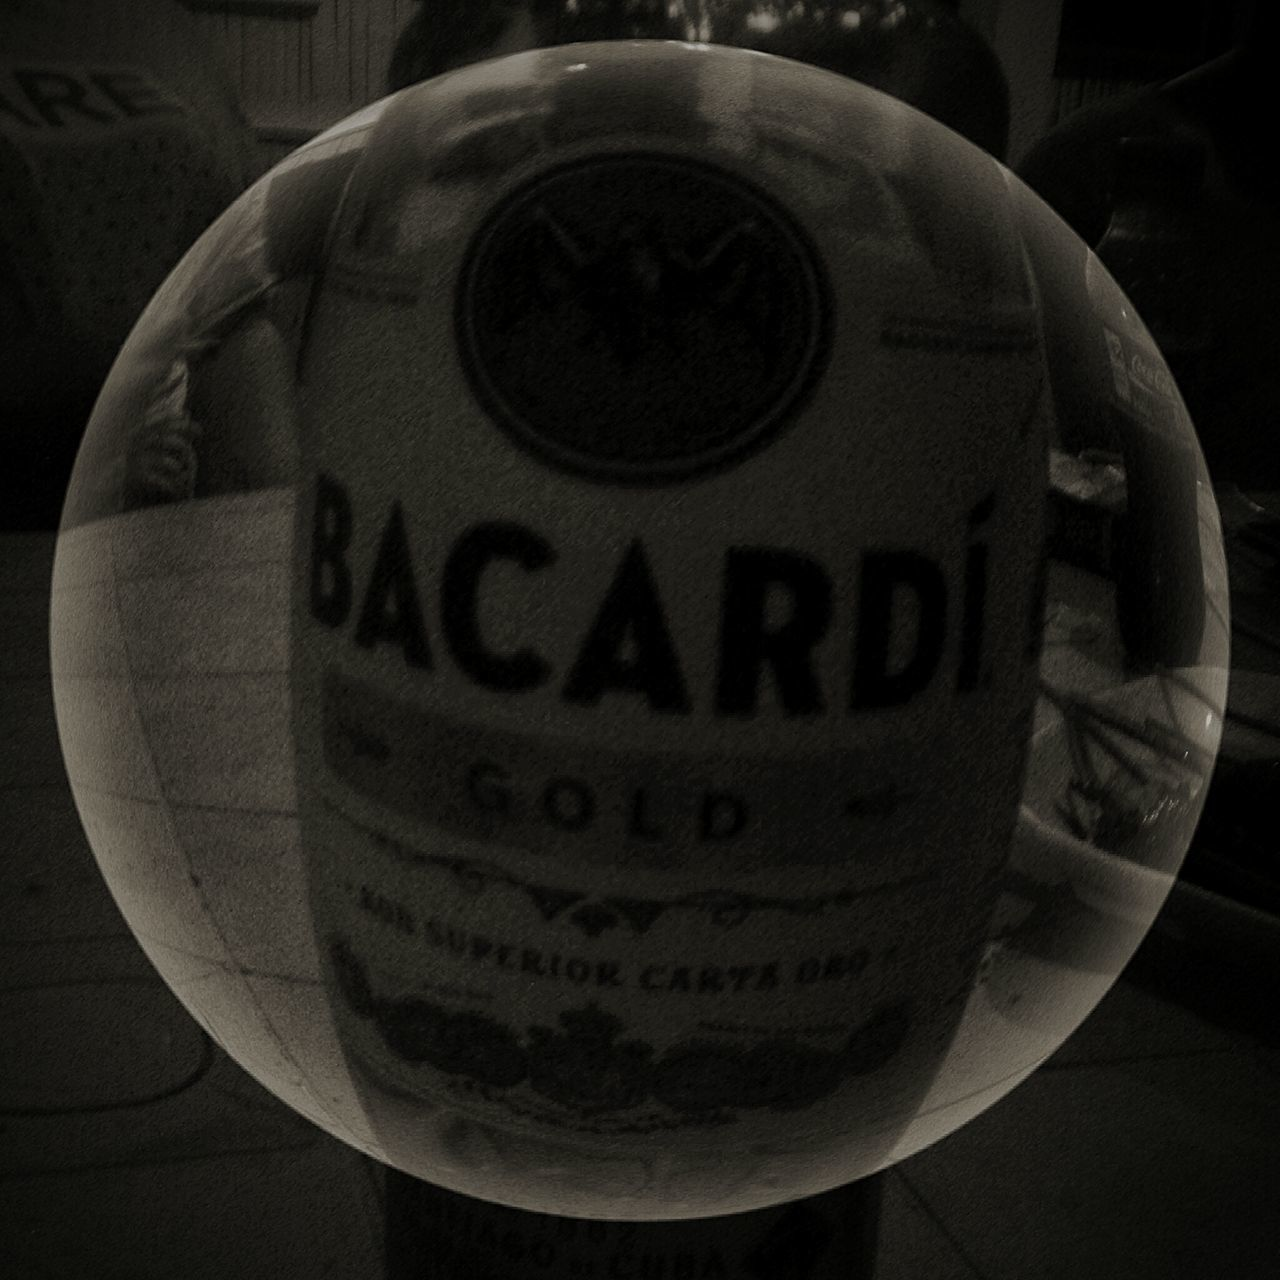 Lets do this! Bacardi  way!!!!